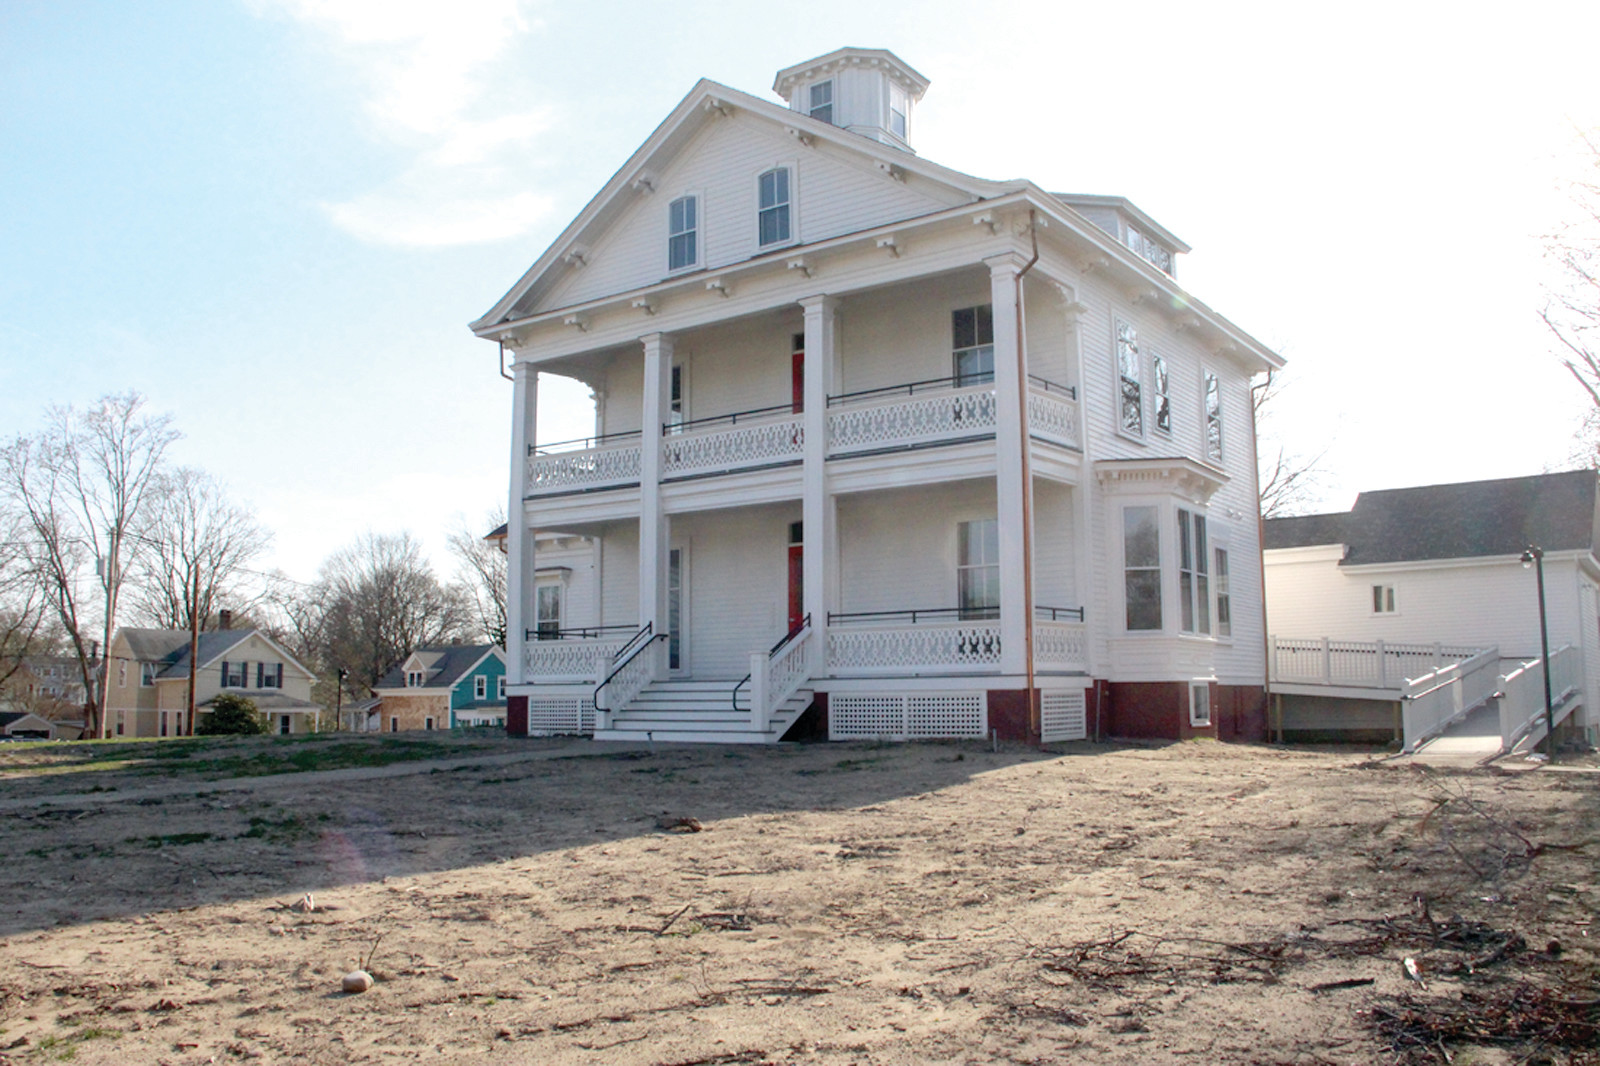 READY FOR A NEW ROLE: Restoration of the Fair Street mansion has been completed and will soon begin a new life as home for 10 affordable housing apartments. An open house fundraiser is planned for this Thursday evening.